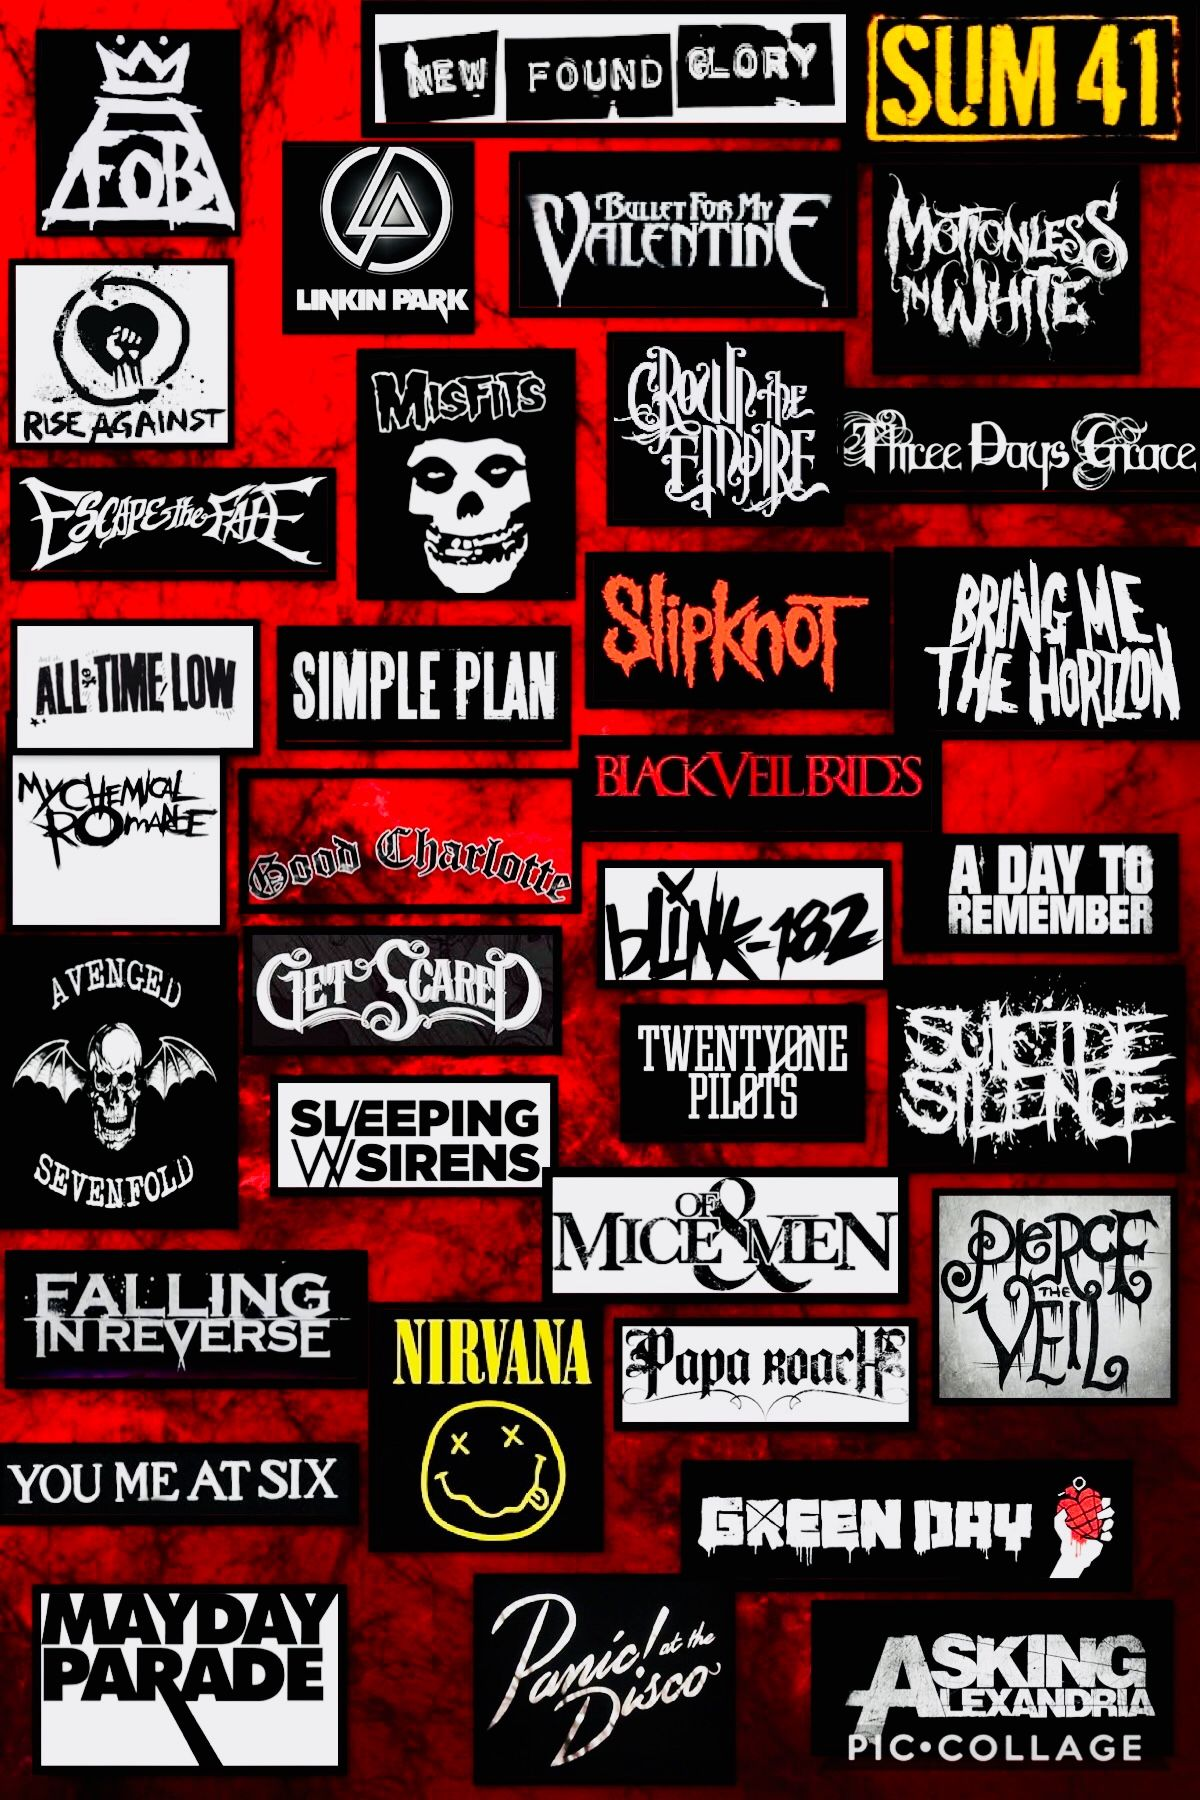 Pin by Guerreroerickismael on Coseee | Punk bands logos, Music collage, Rock  band logos